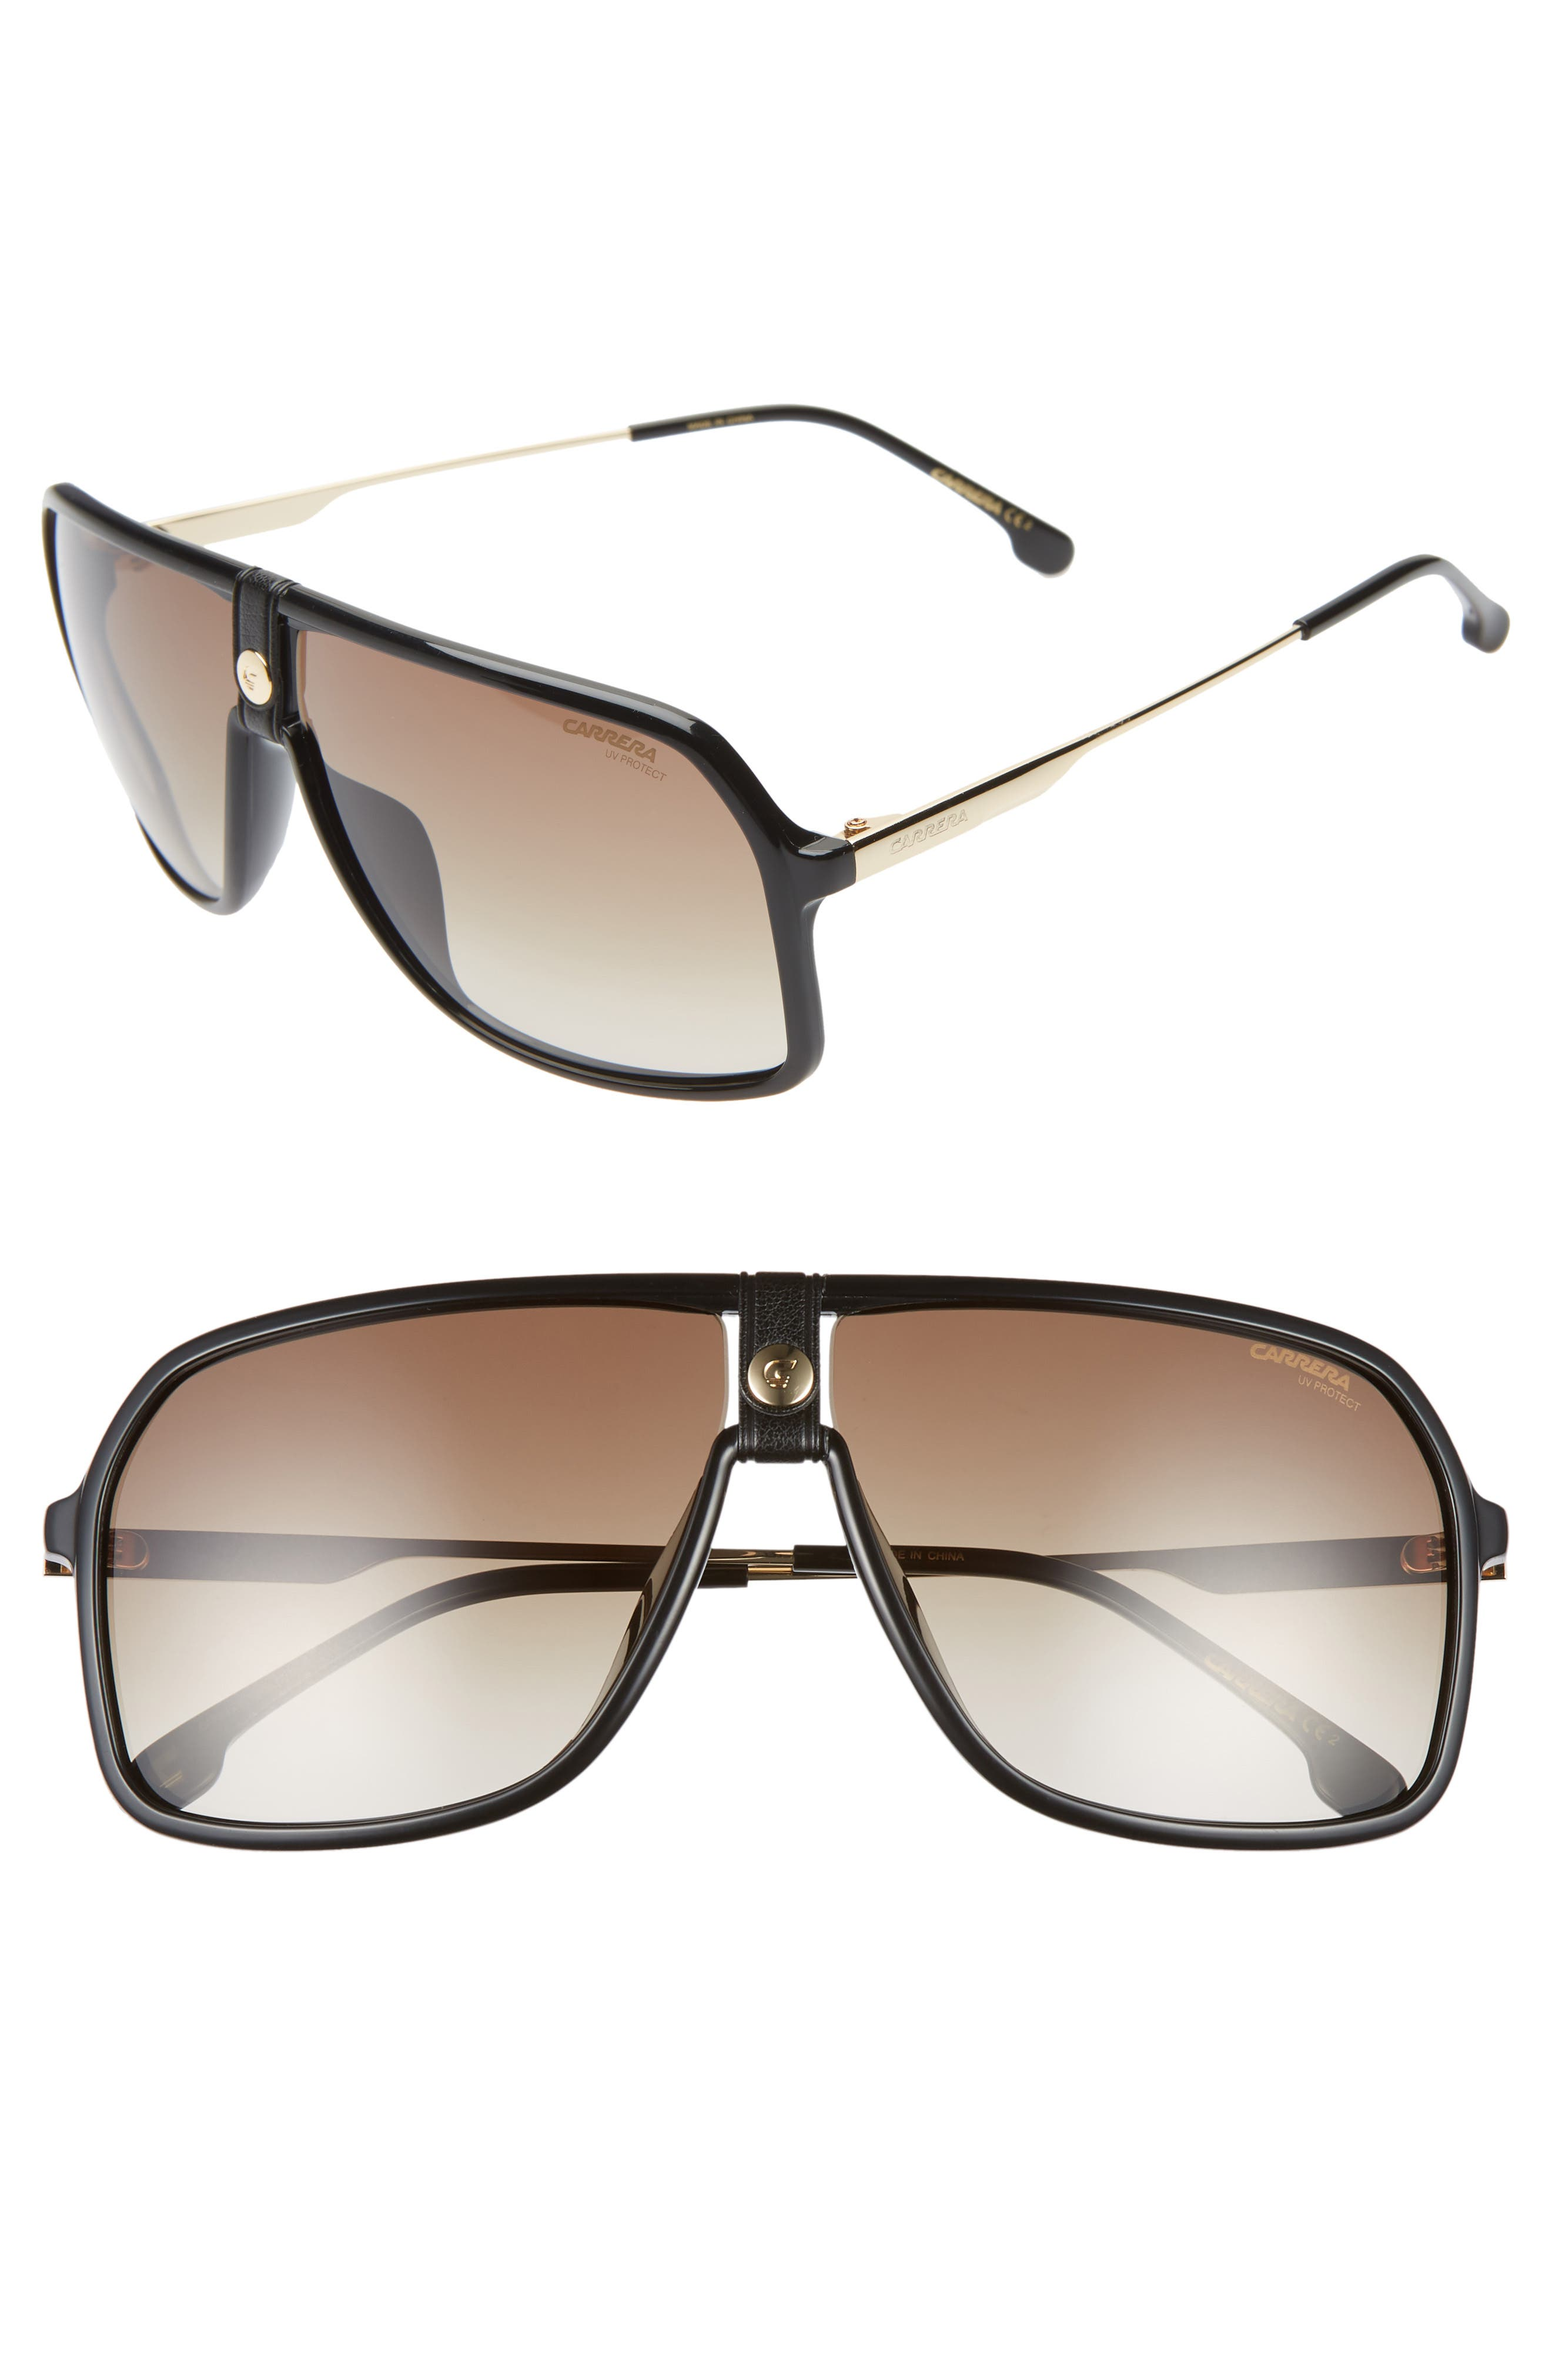 Carrera Eyewear Navigator Sunglasses - Black